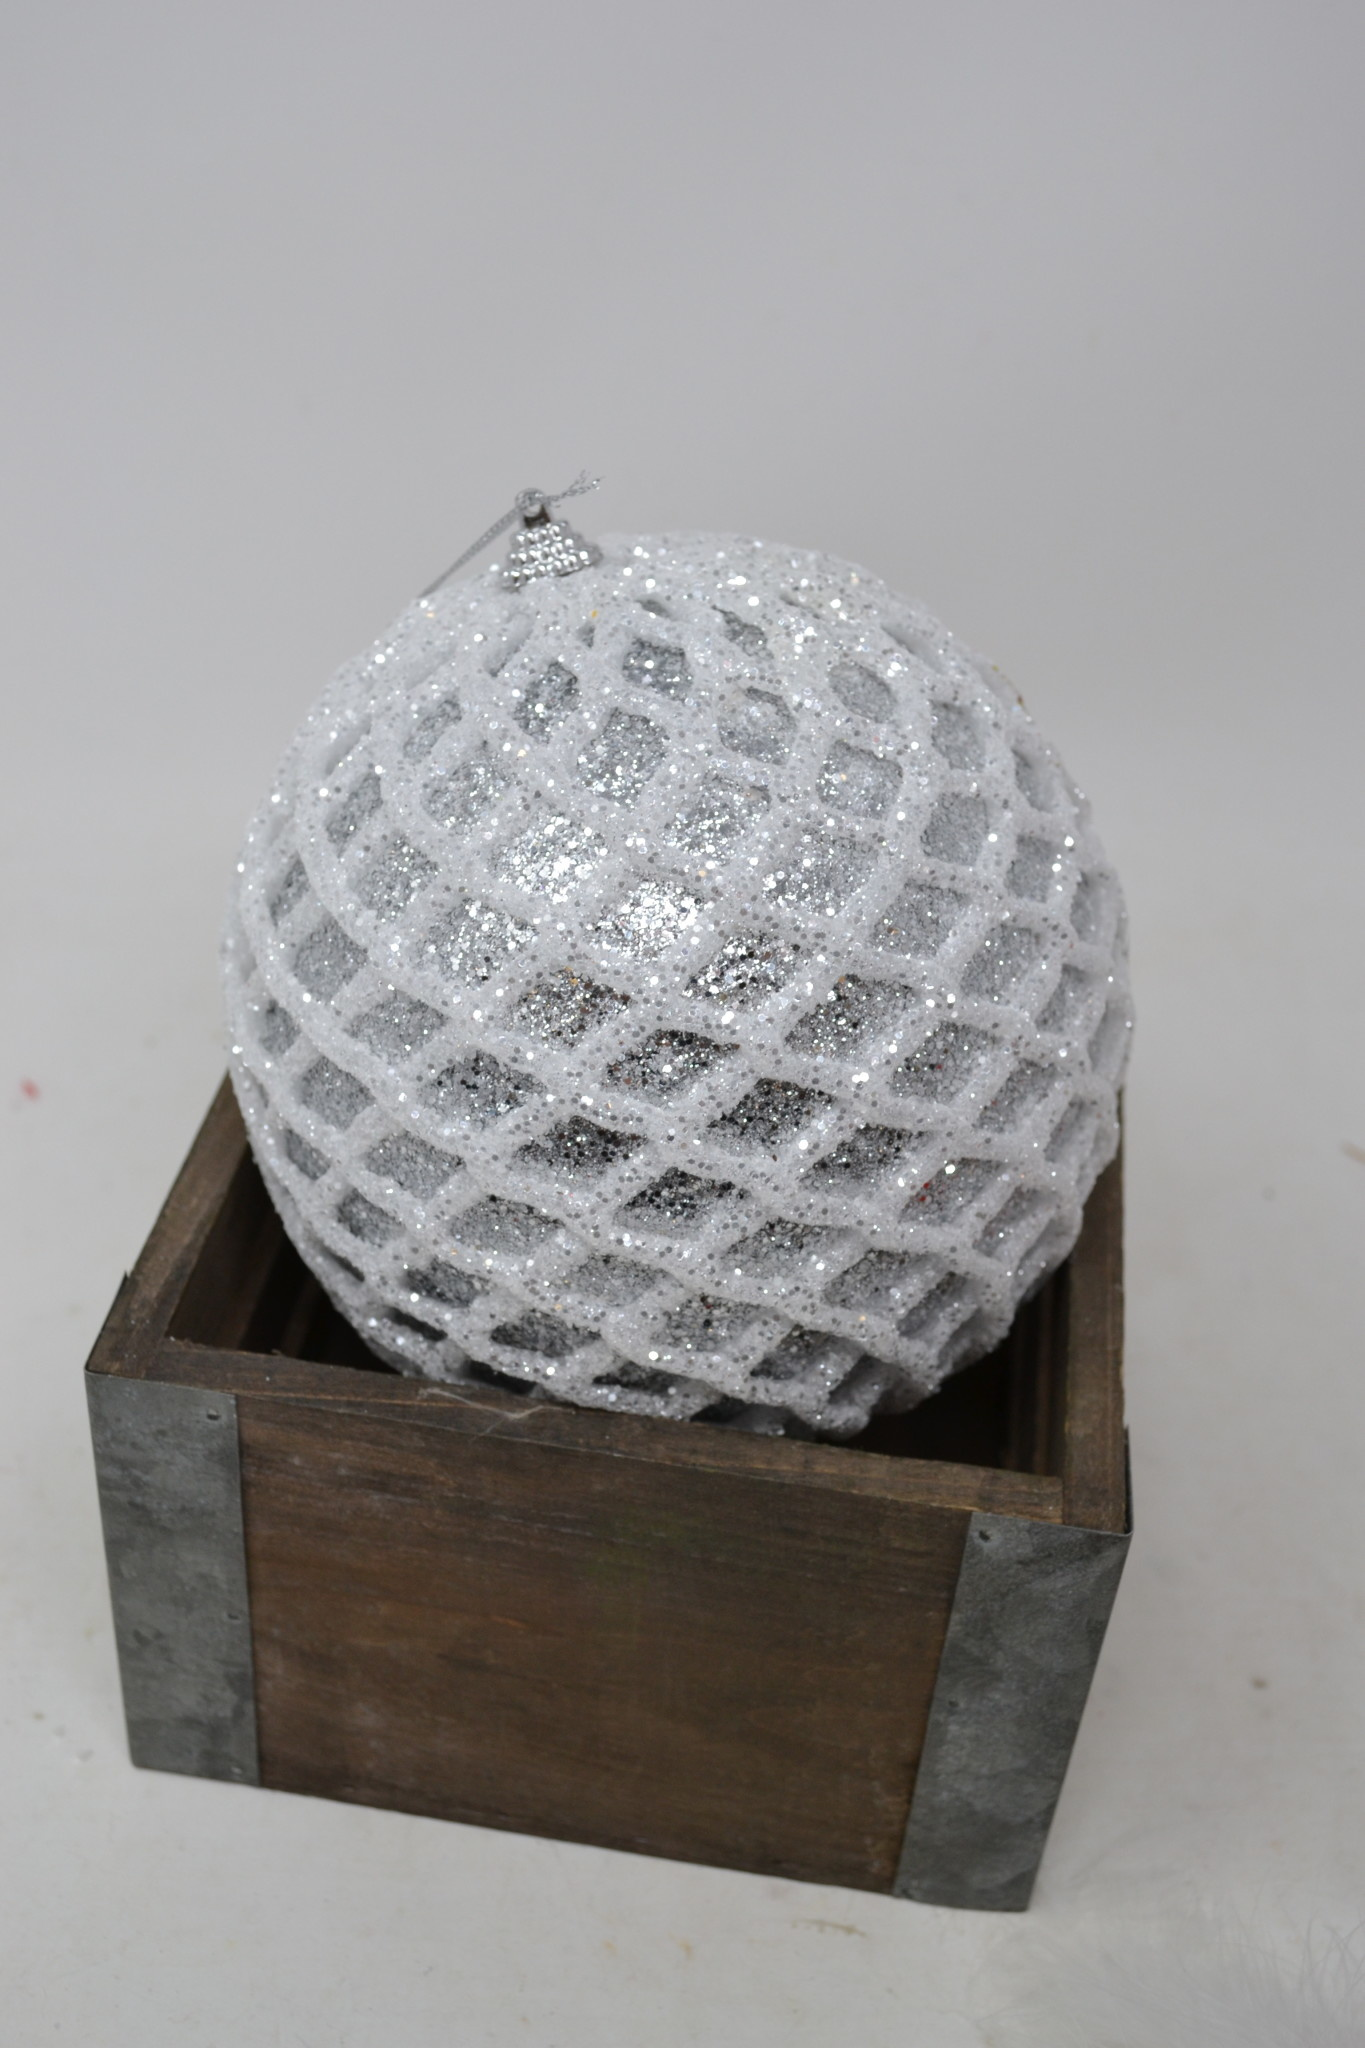 Glitter Diamond Patterned Ball Ornament